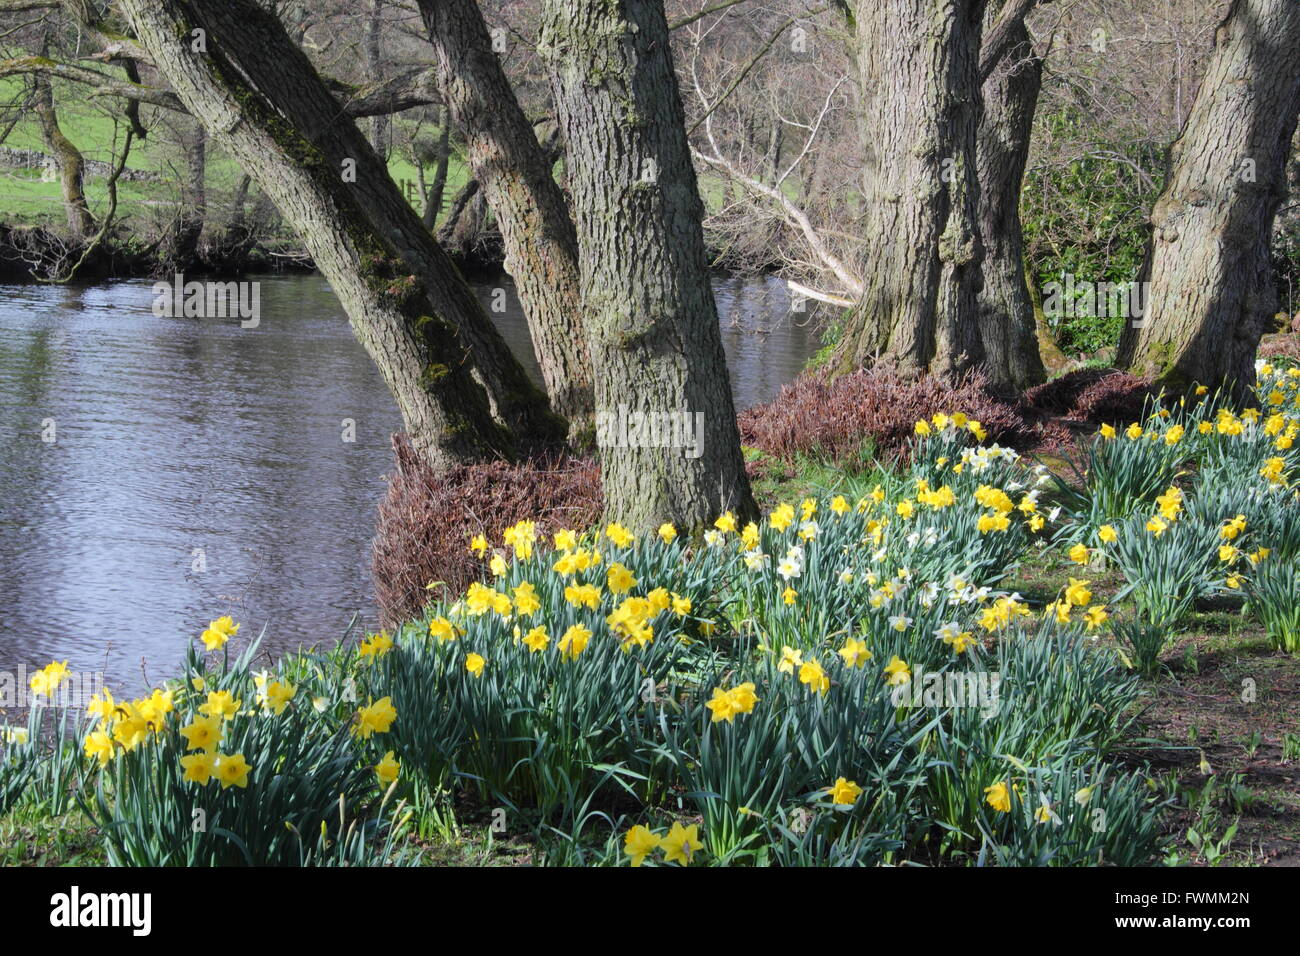 Daffodils line the path along the River Derwent at Froggatt in the Peak District, Derbyshire England UK - Stock Image